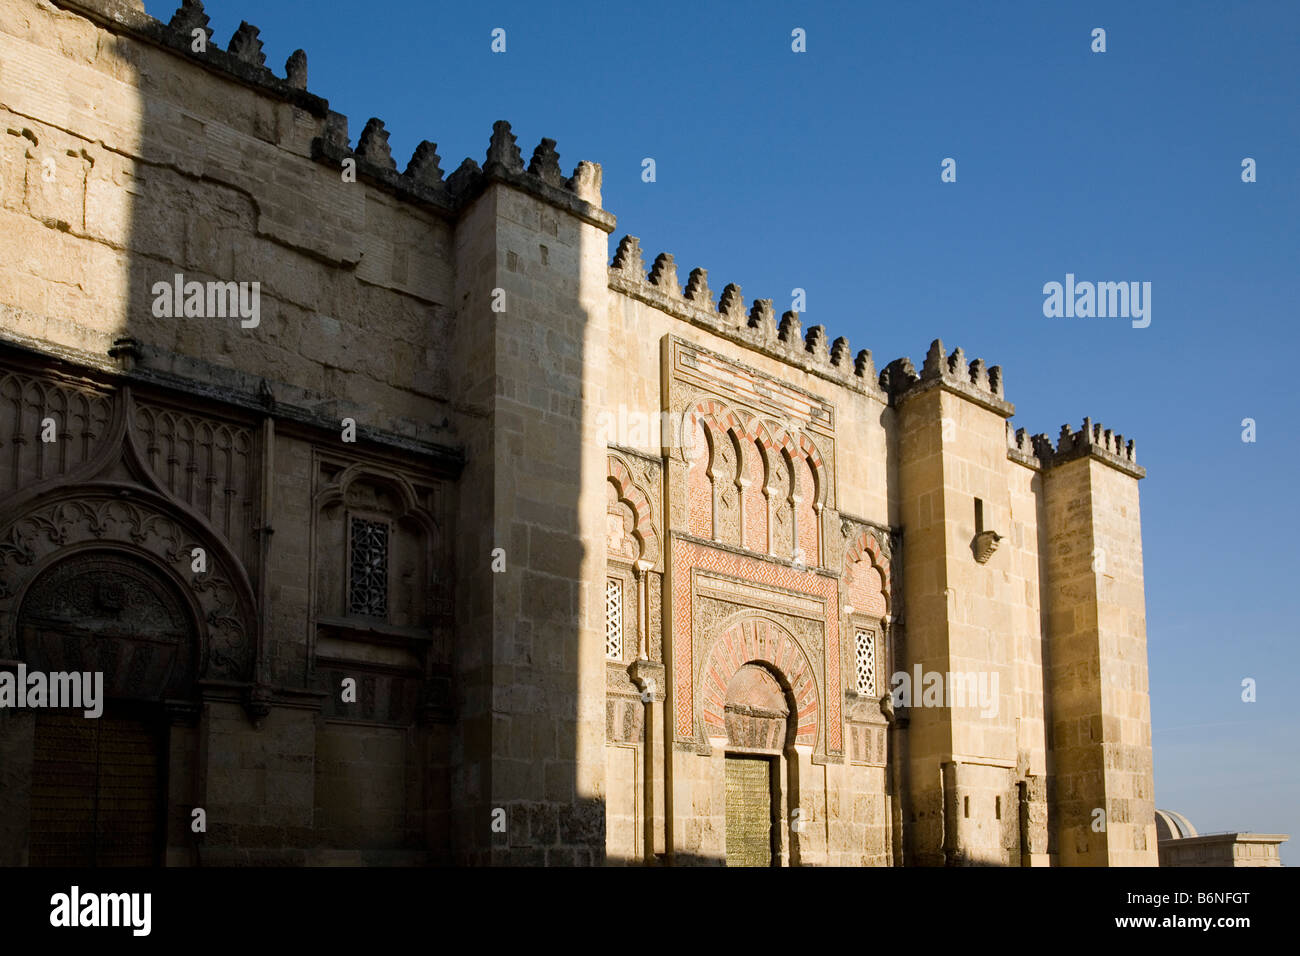 exterior de la mezquita catedral de cordoba andalucia españa cordova cathedral mosque andalusia spain Stock Photo